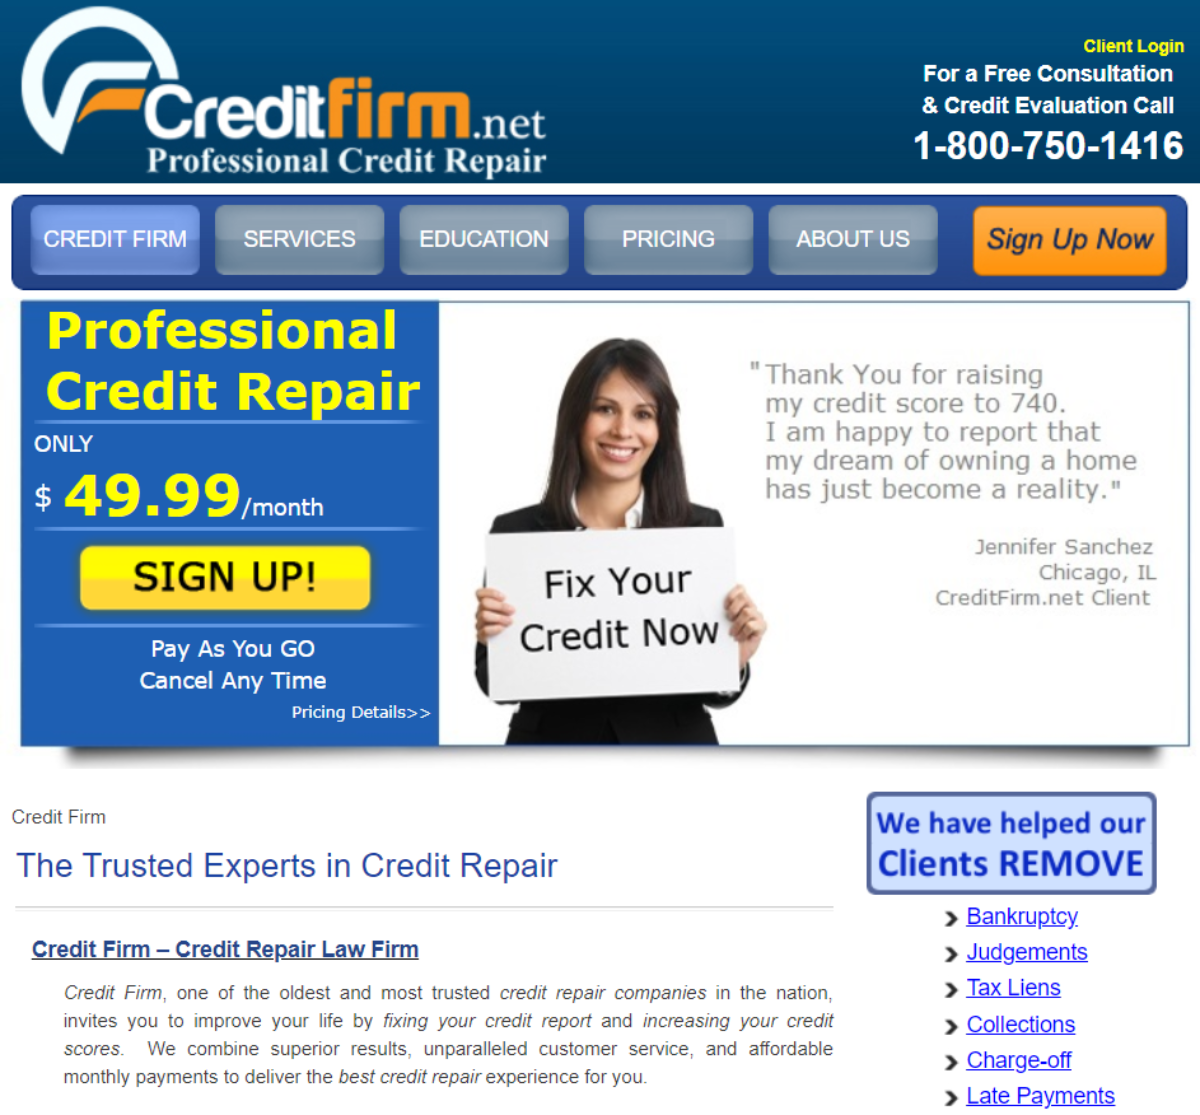 This is a screenshot taken from the homepage of CreditFirm.Net showing they provide a professional credit repair service, provided by legal experts, for the lowest monthly fee in the industry.